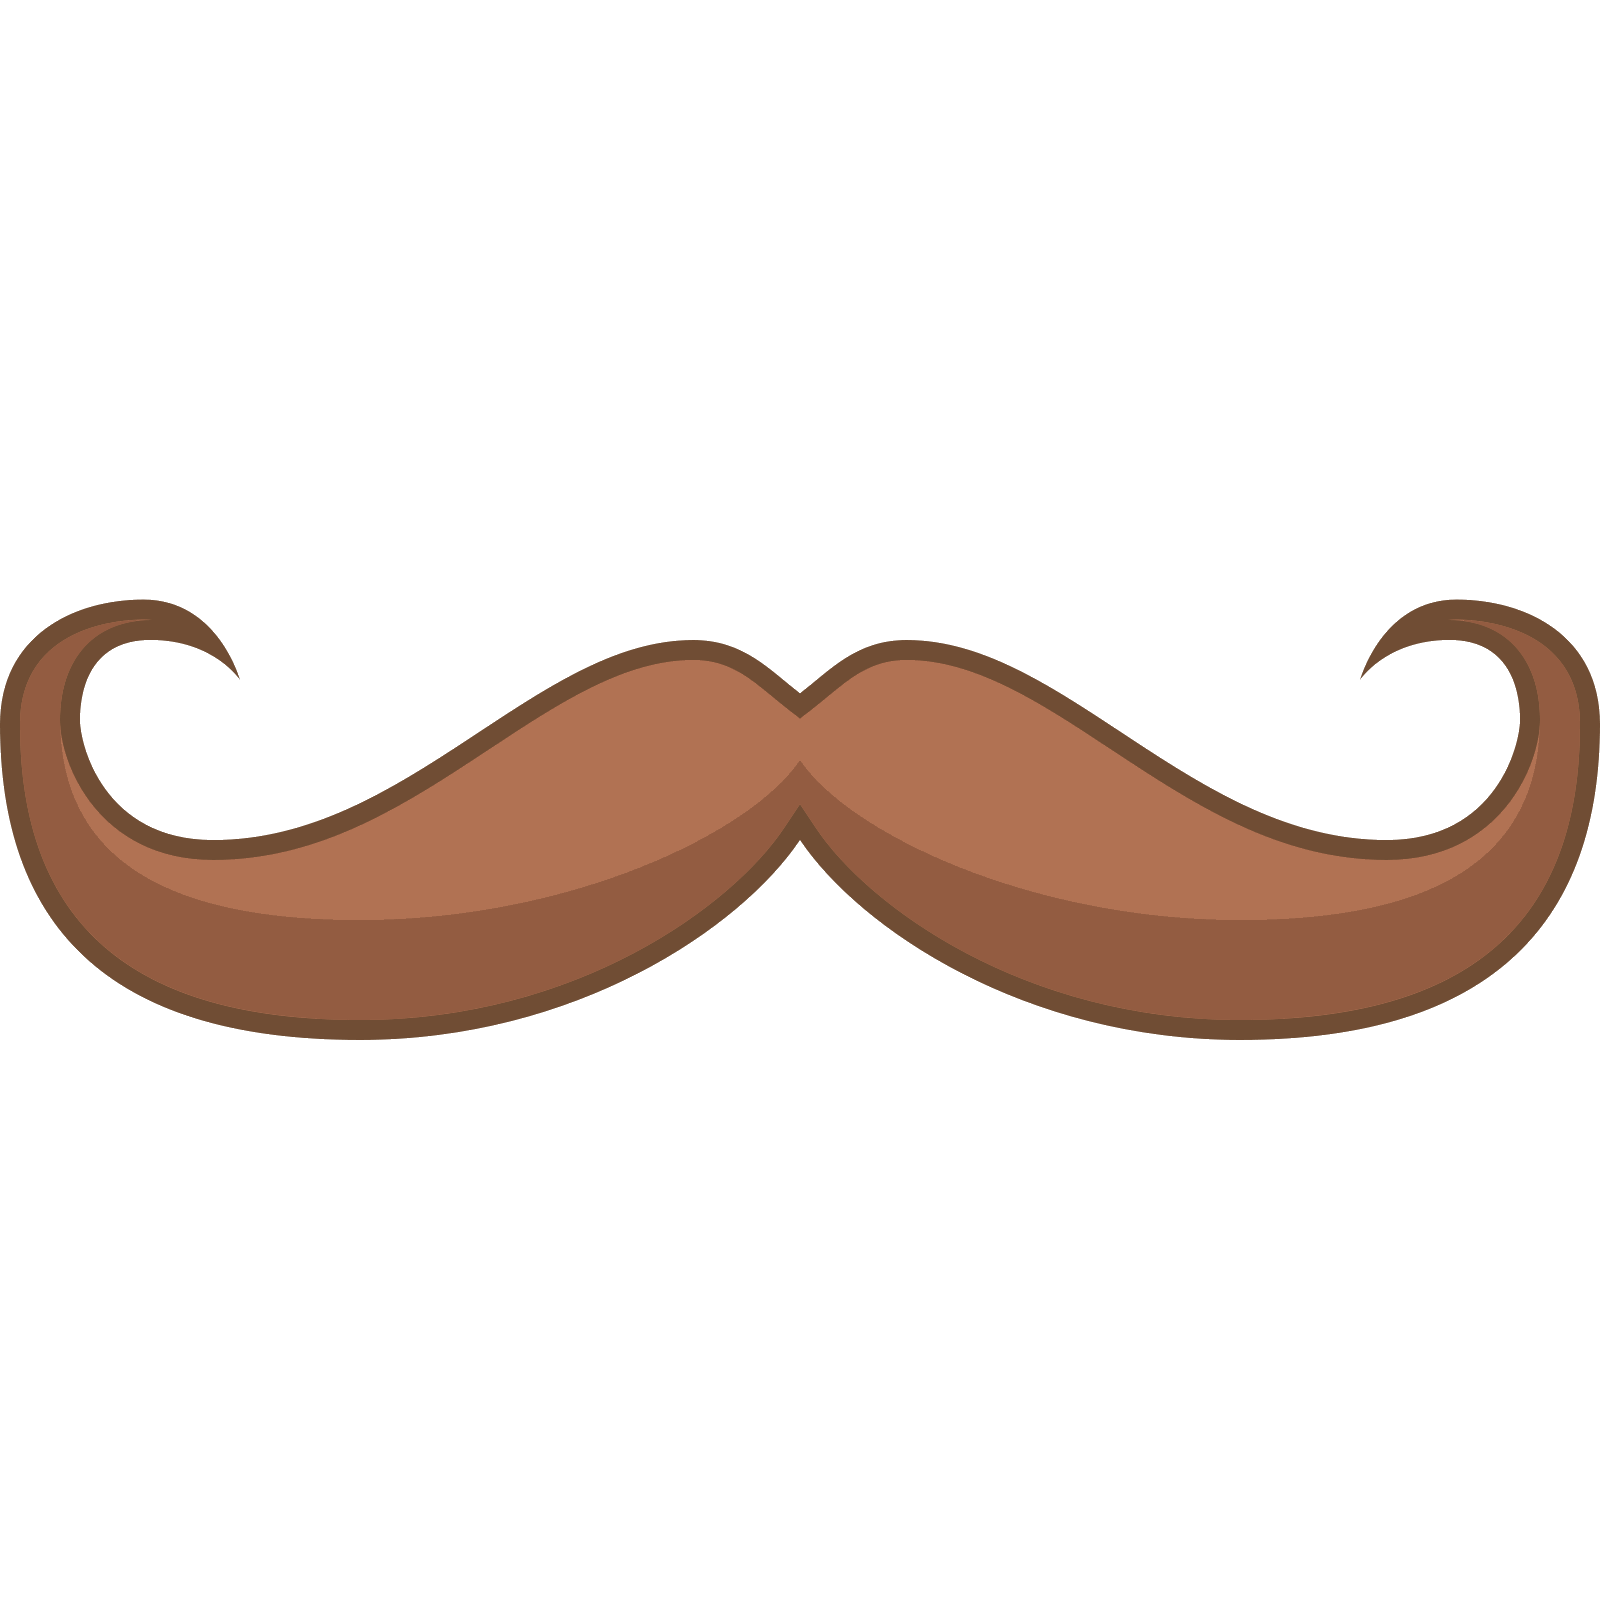 Handle bar mustache png. Handlebar icon free download